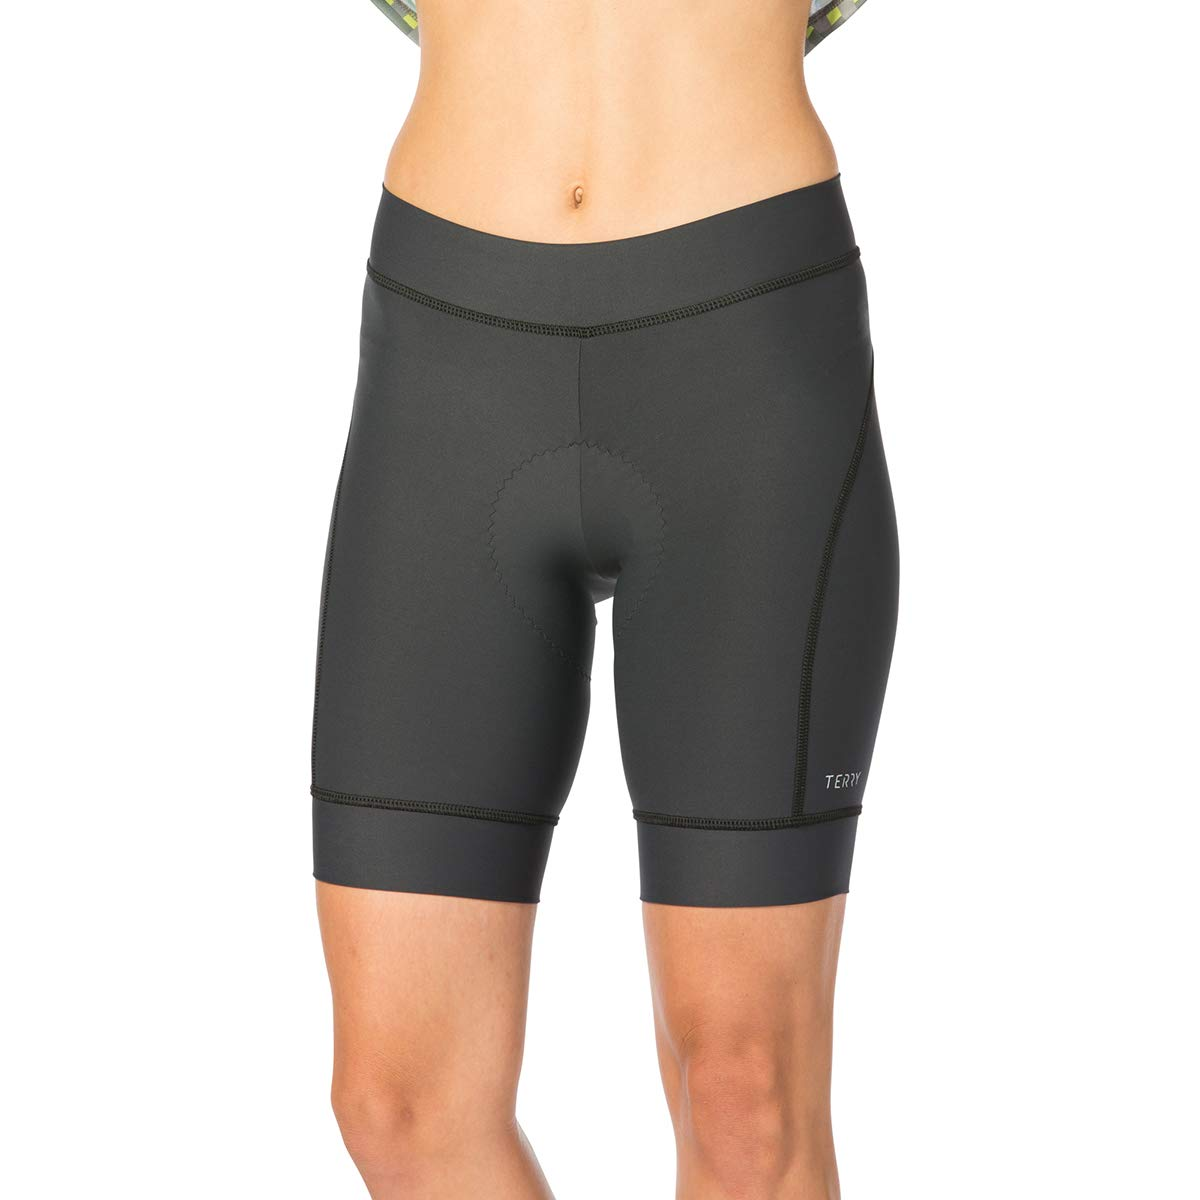 Terry Highly Rated Breakaway Performance Cycling Shorts for Women - Bicycling Magazine Editor's Choice– Charcoal – Small